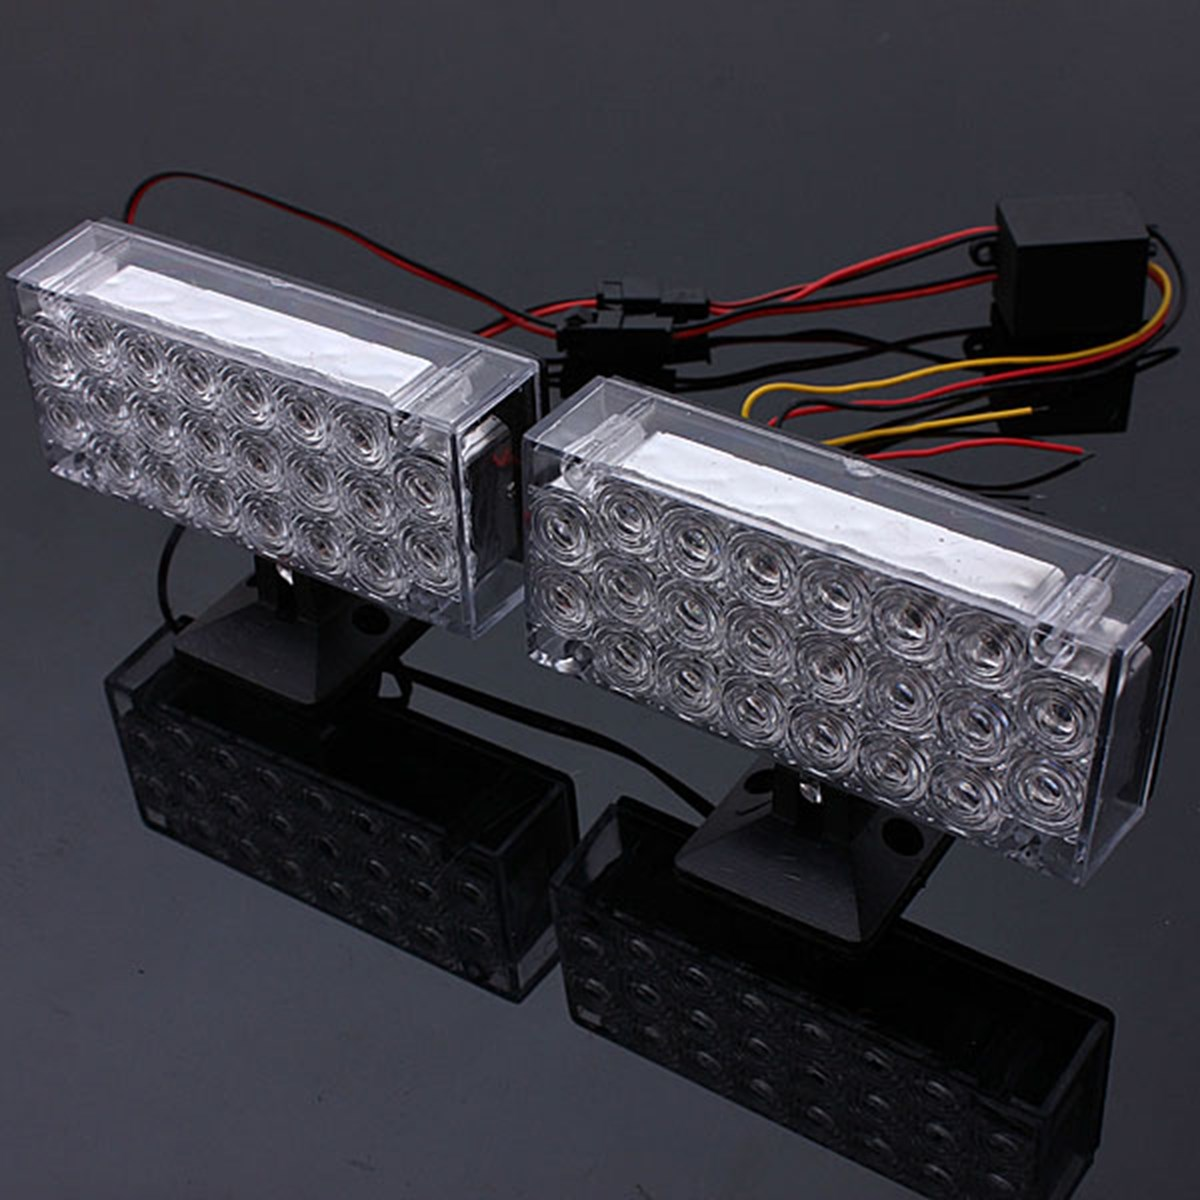 The Best Price 1 Pair  22 LED Red Flashing Emergency Light Warning Grill Strobe Flash Lamp 12V 220LM 4W - 6W nema43 best price 6 0a 12nm 115mm